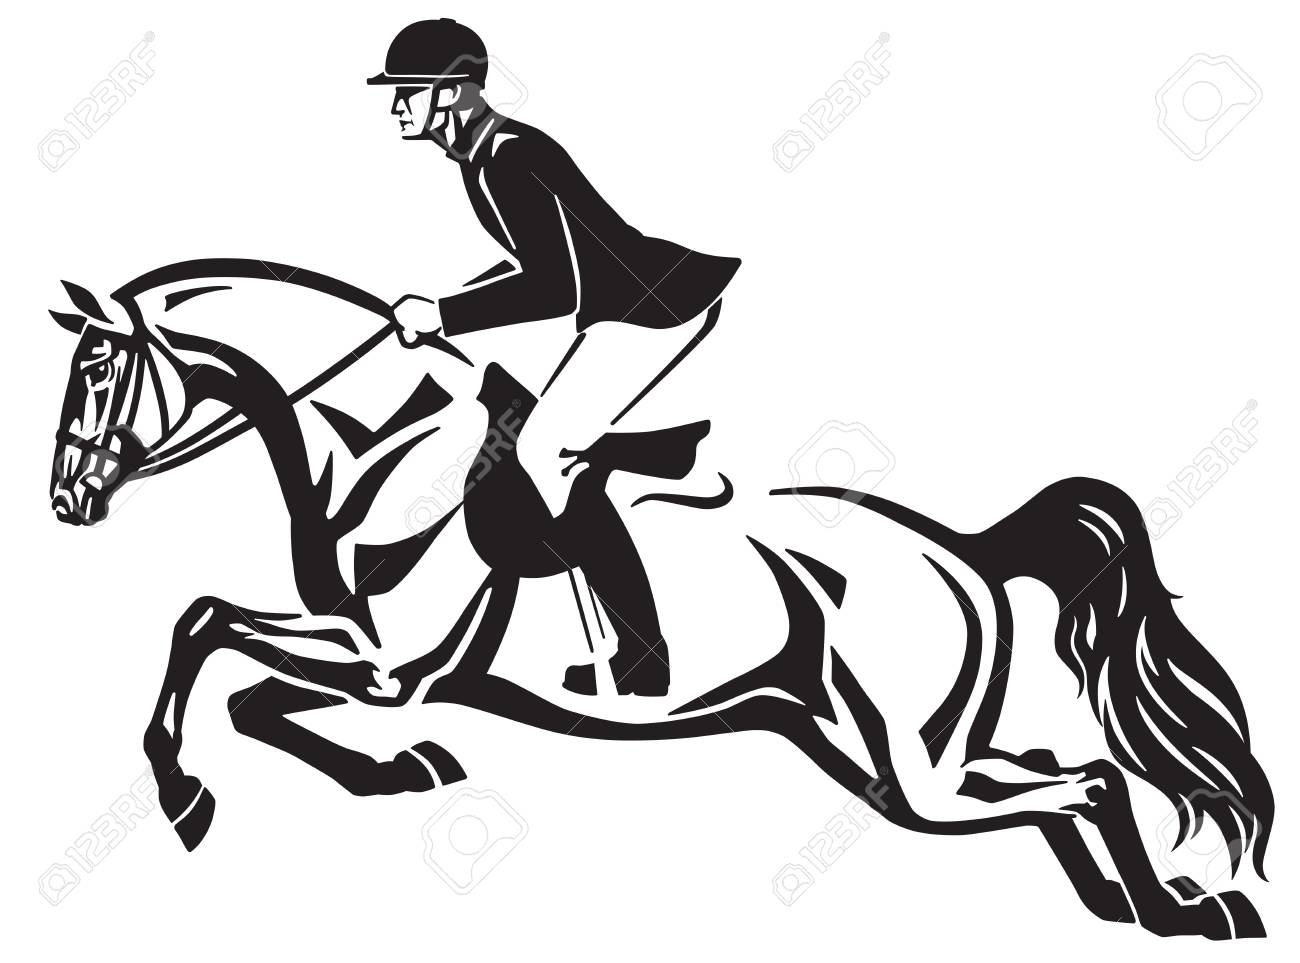 Horse And Rider Jumping Over A Fence Equestrian Stadium Showjumping Royalty Free Cliparts Vectors And Stock Illustration Image 96000724